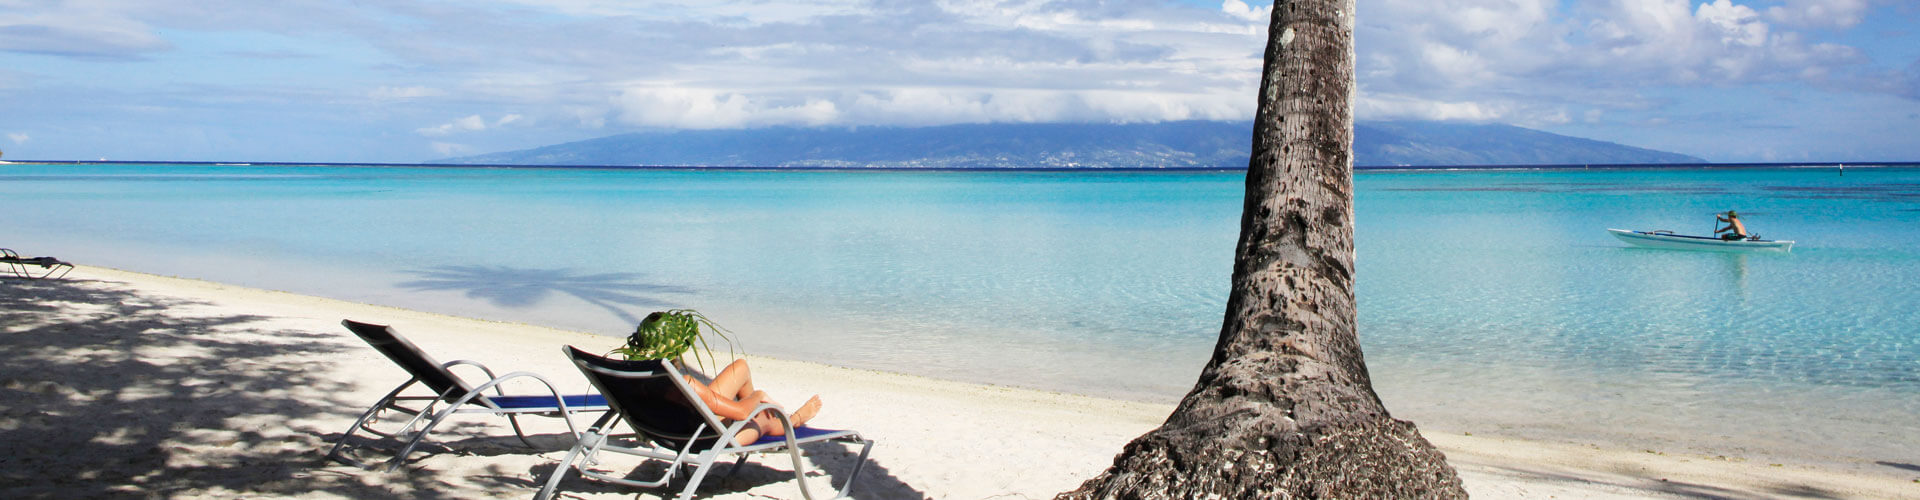 Moorea Sofitel Moorea La Ora Beach Resort 7 Night Package